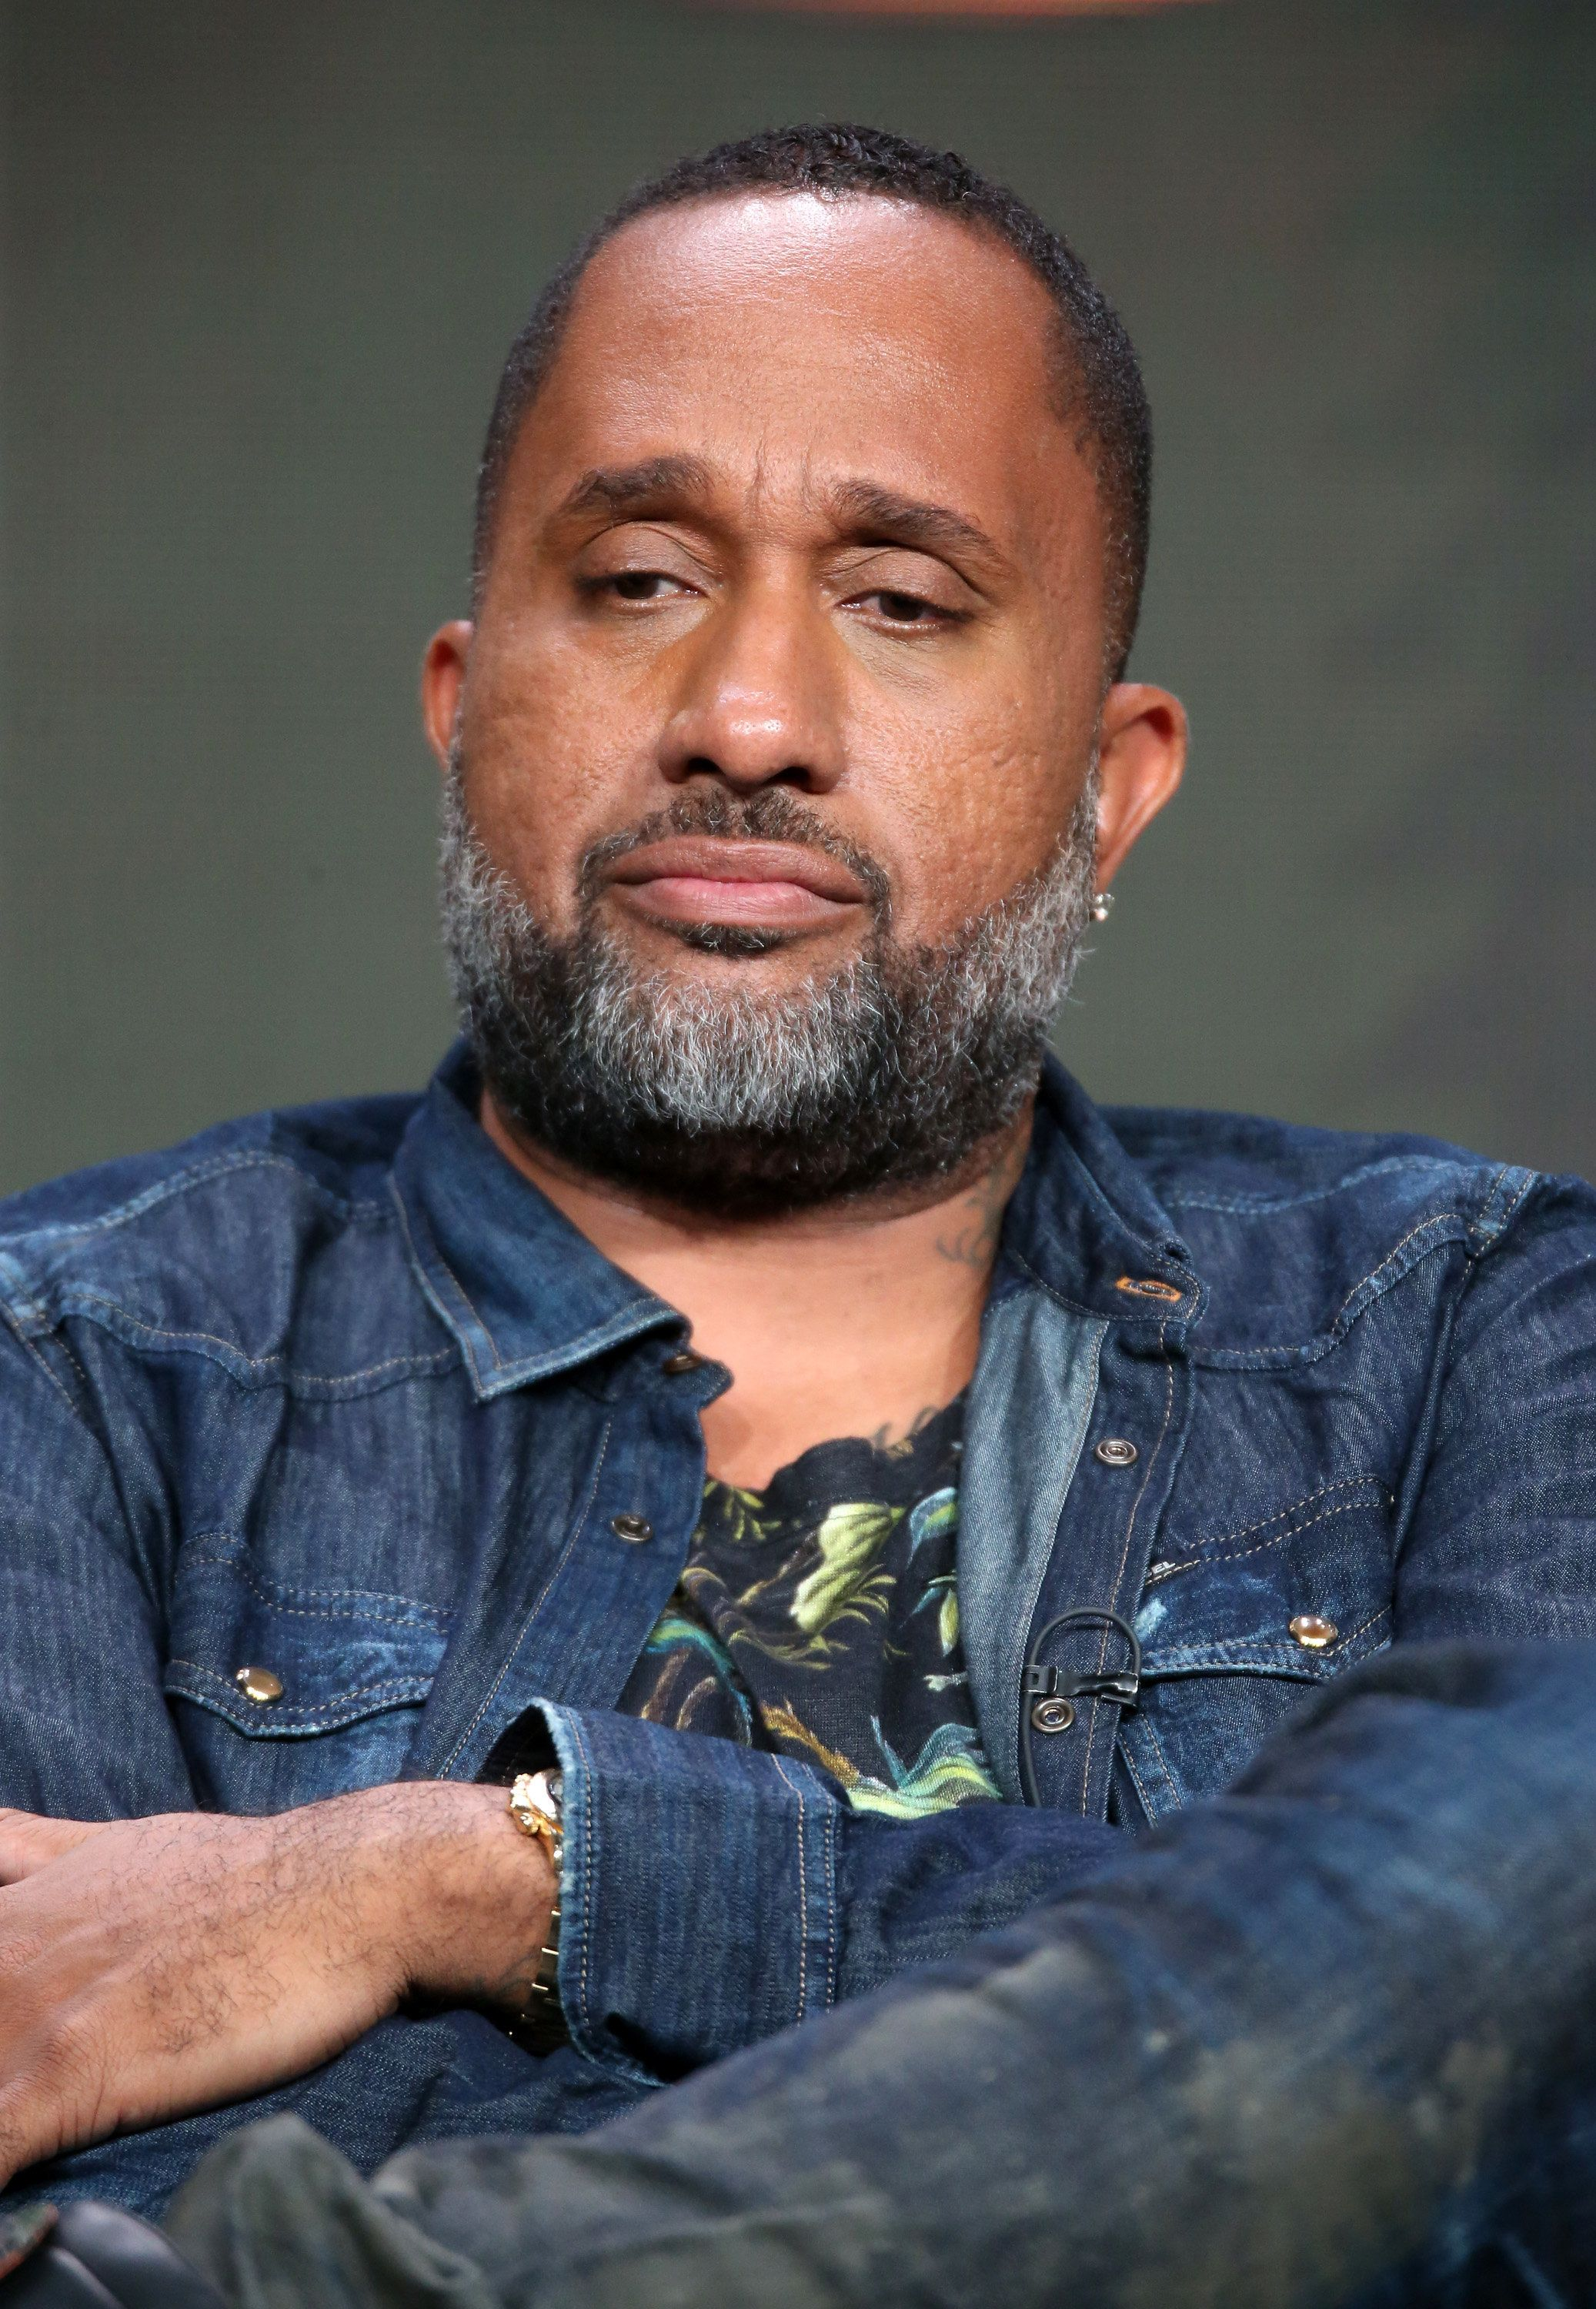 BEVERLY HILLS, CA - AUGUST 04:  Creator/executive producer Kenya Barris speaks onstage at the 'Black-ish' panel discussion during the Disney ABC Television Group portion of the 2016 Television Critics Association Summer Tour at The Beverly Hilton Hotel on August 4, 2016 in Beverly Hills, California.  (Photo by Frederick M. Brown/Getty Images)